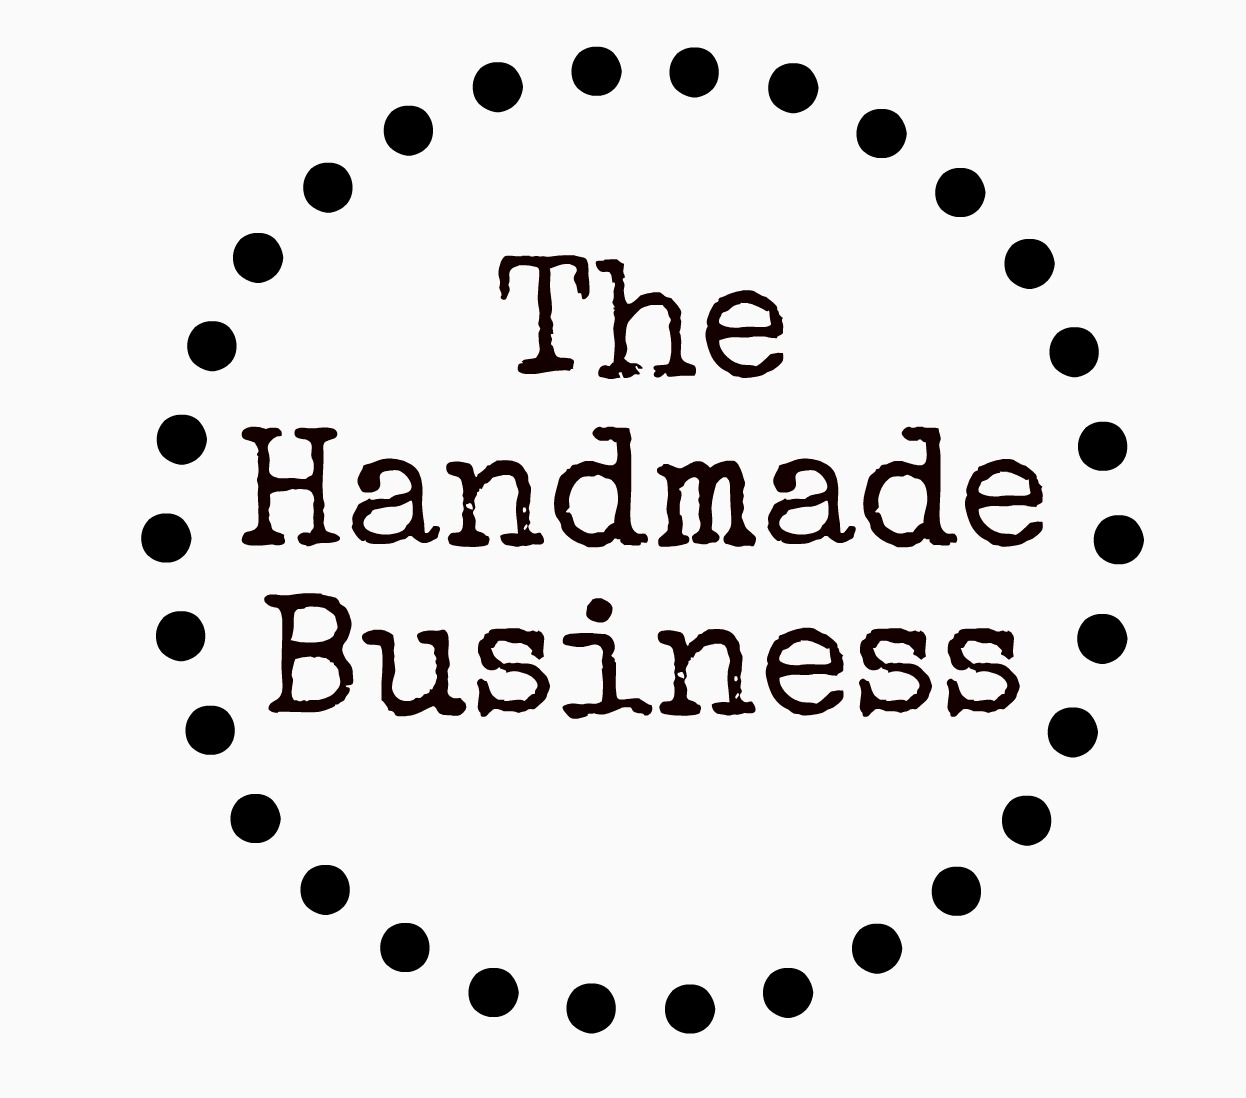 The Handmade Business Where Should I Sell My Goods